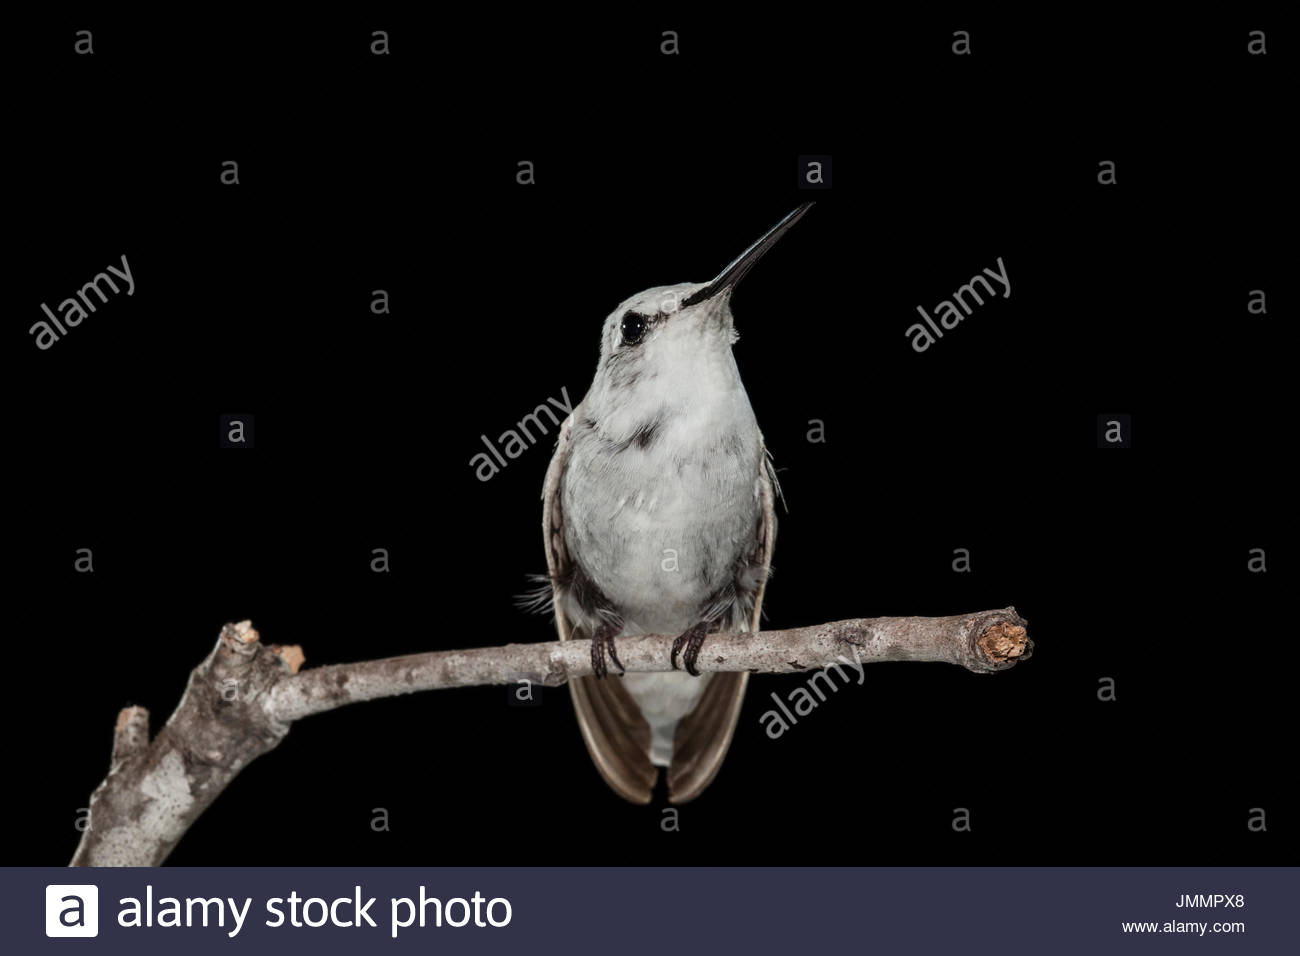 An extremely rare leucistic female Anna's Hummingbird, Calypte anna, in a flight cage. - Stock Image